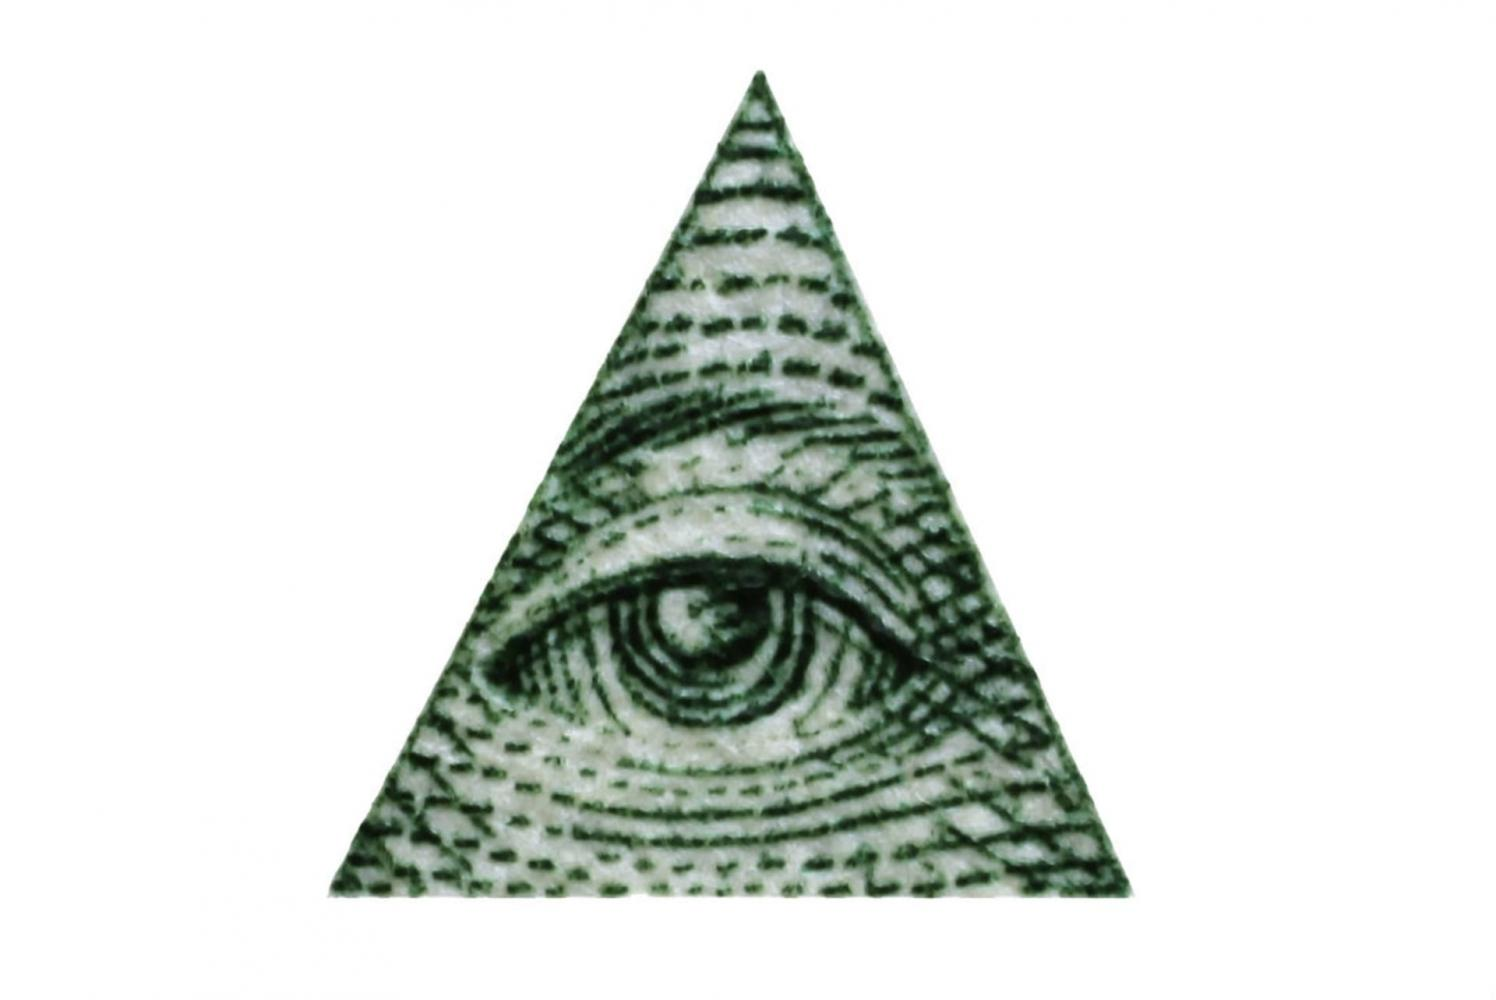 FFP's logo, right, which is in the shape of an upside-down triangle is compared to the triangular sign of the Illuminati secret society.